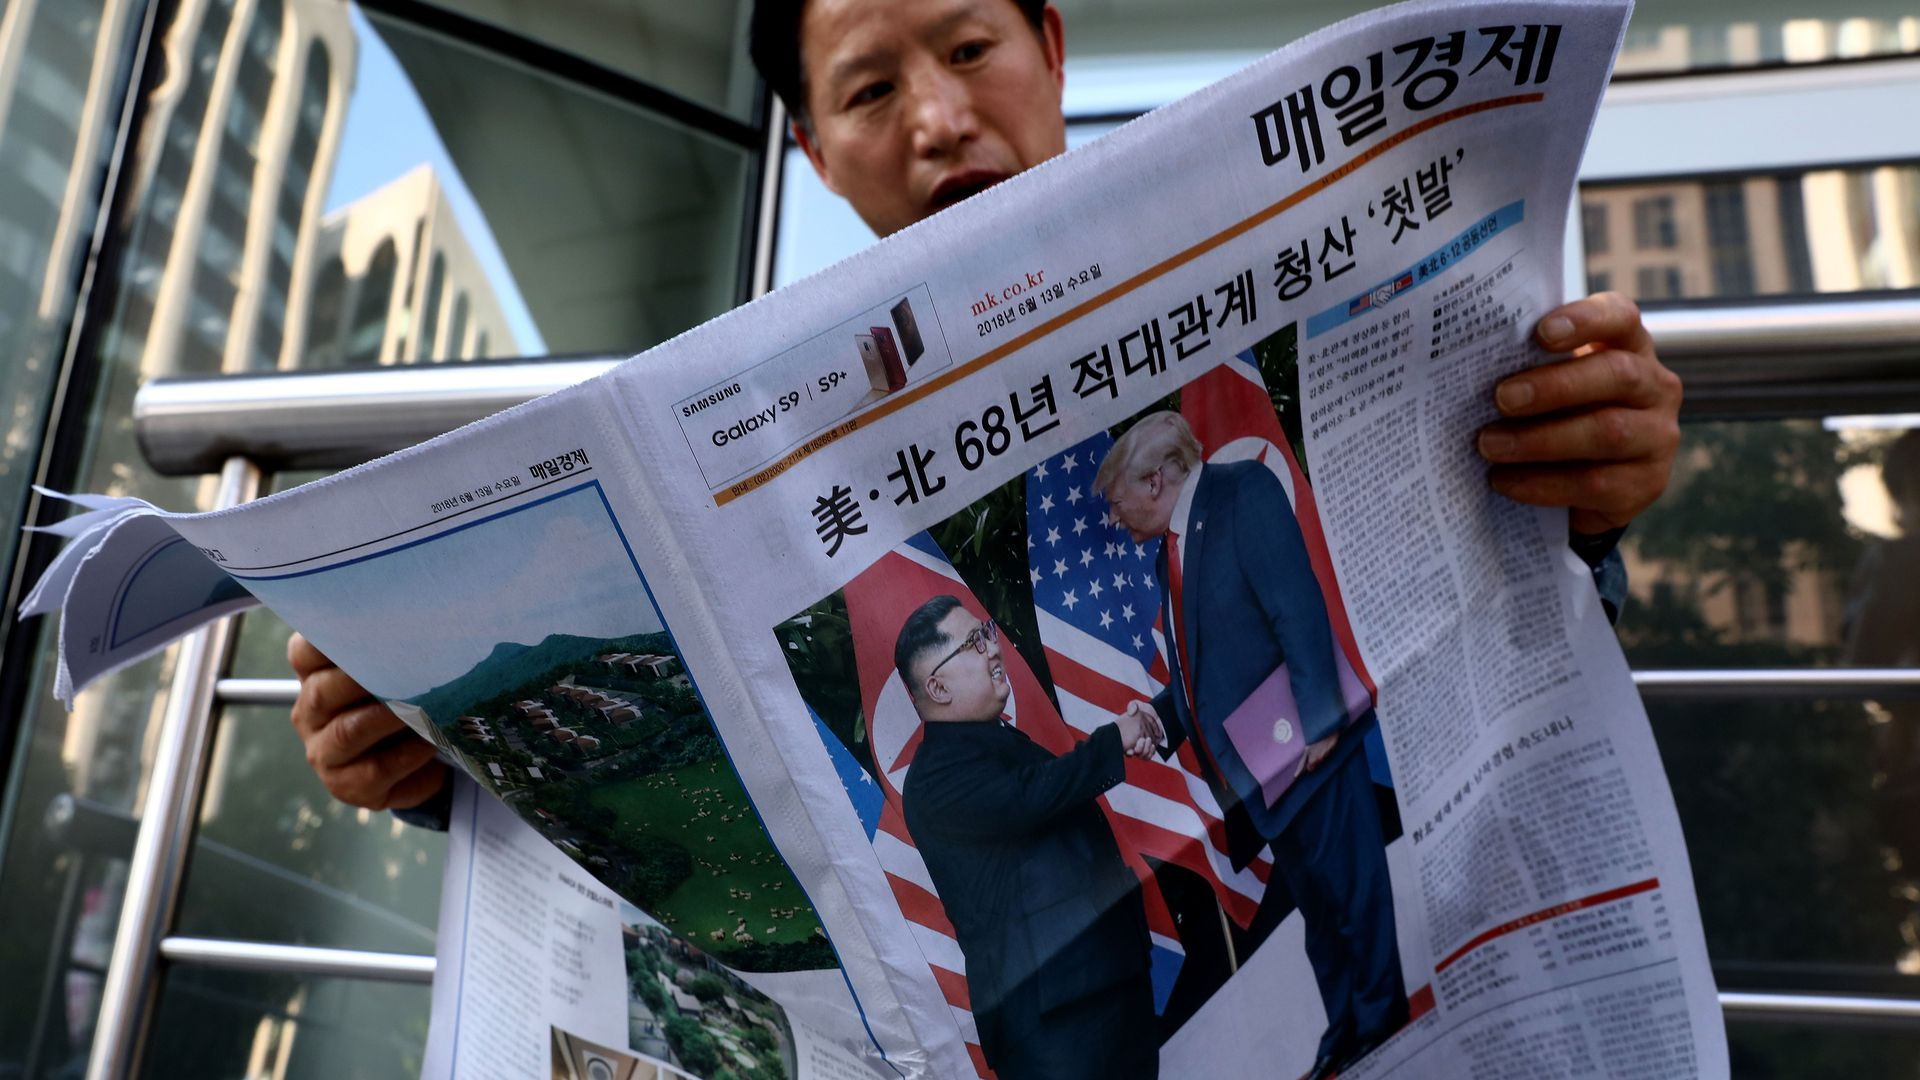 An Asian man reading a newspaper with a photo of Kim Jong-un and Donald Trump shaking hands on the front page